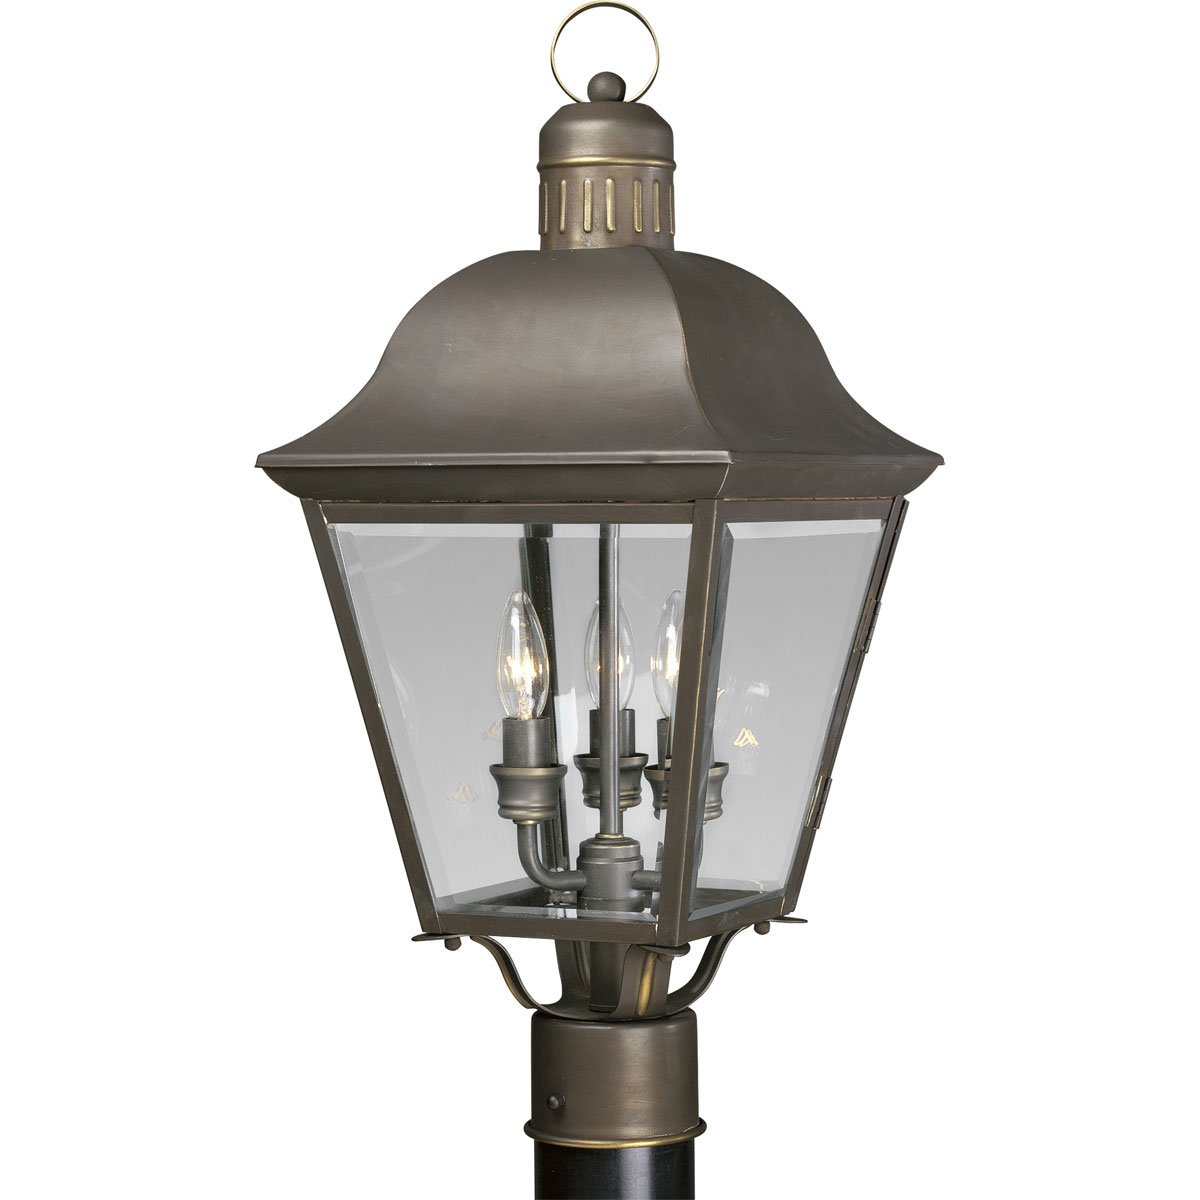 Progress Lighting P5487-20 3-Light Andover Post Lantern, Antique Bronze by Progress Lighting